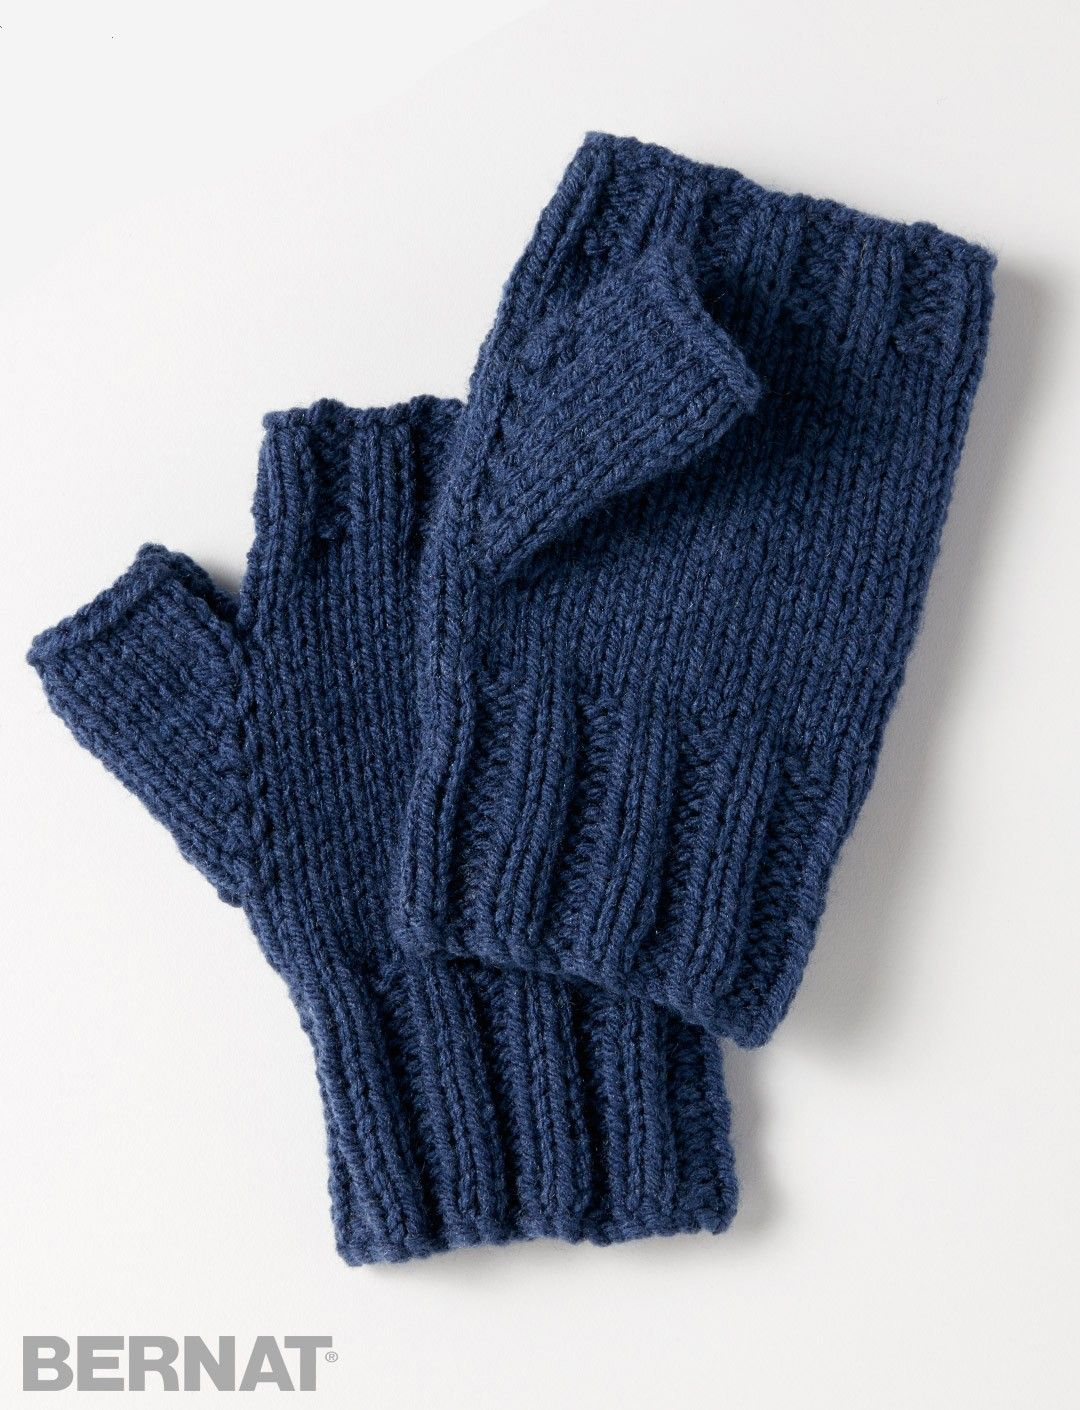 Yarnspirations bernat fingerless gloves patterns stay warm and mobile with these comfy fingerless gloves easily knit in bernat super value yarn bankloansurffo Image collections